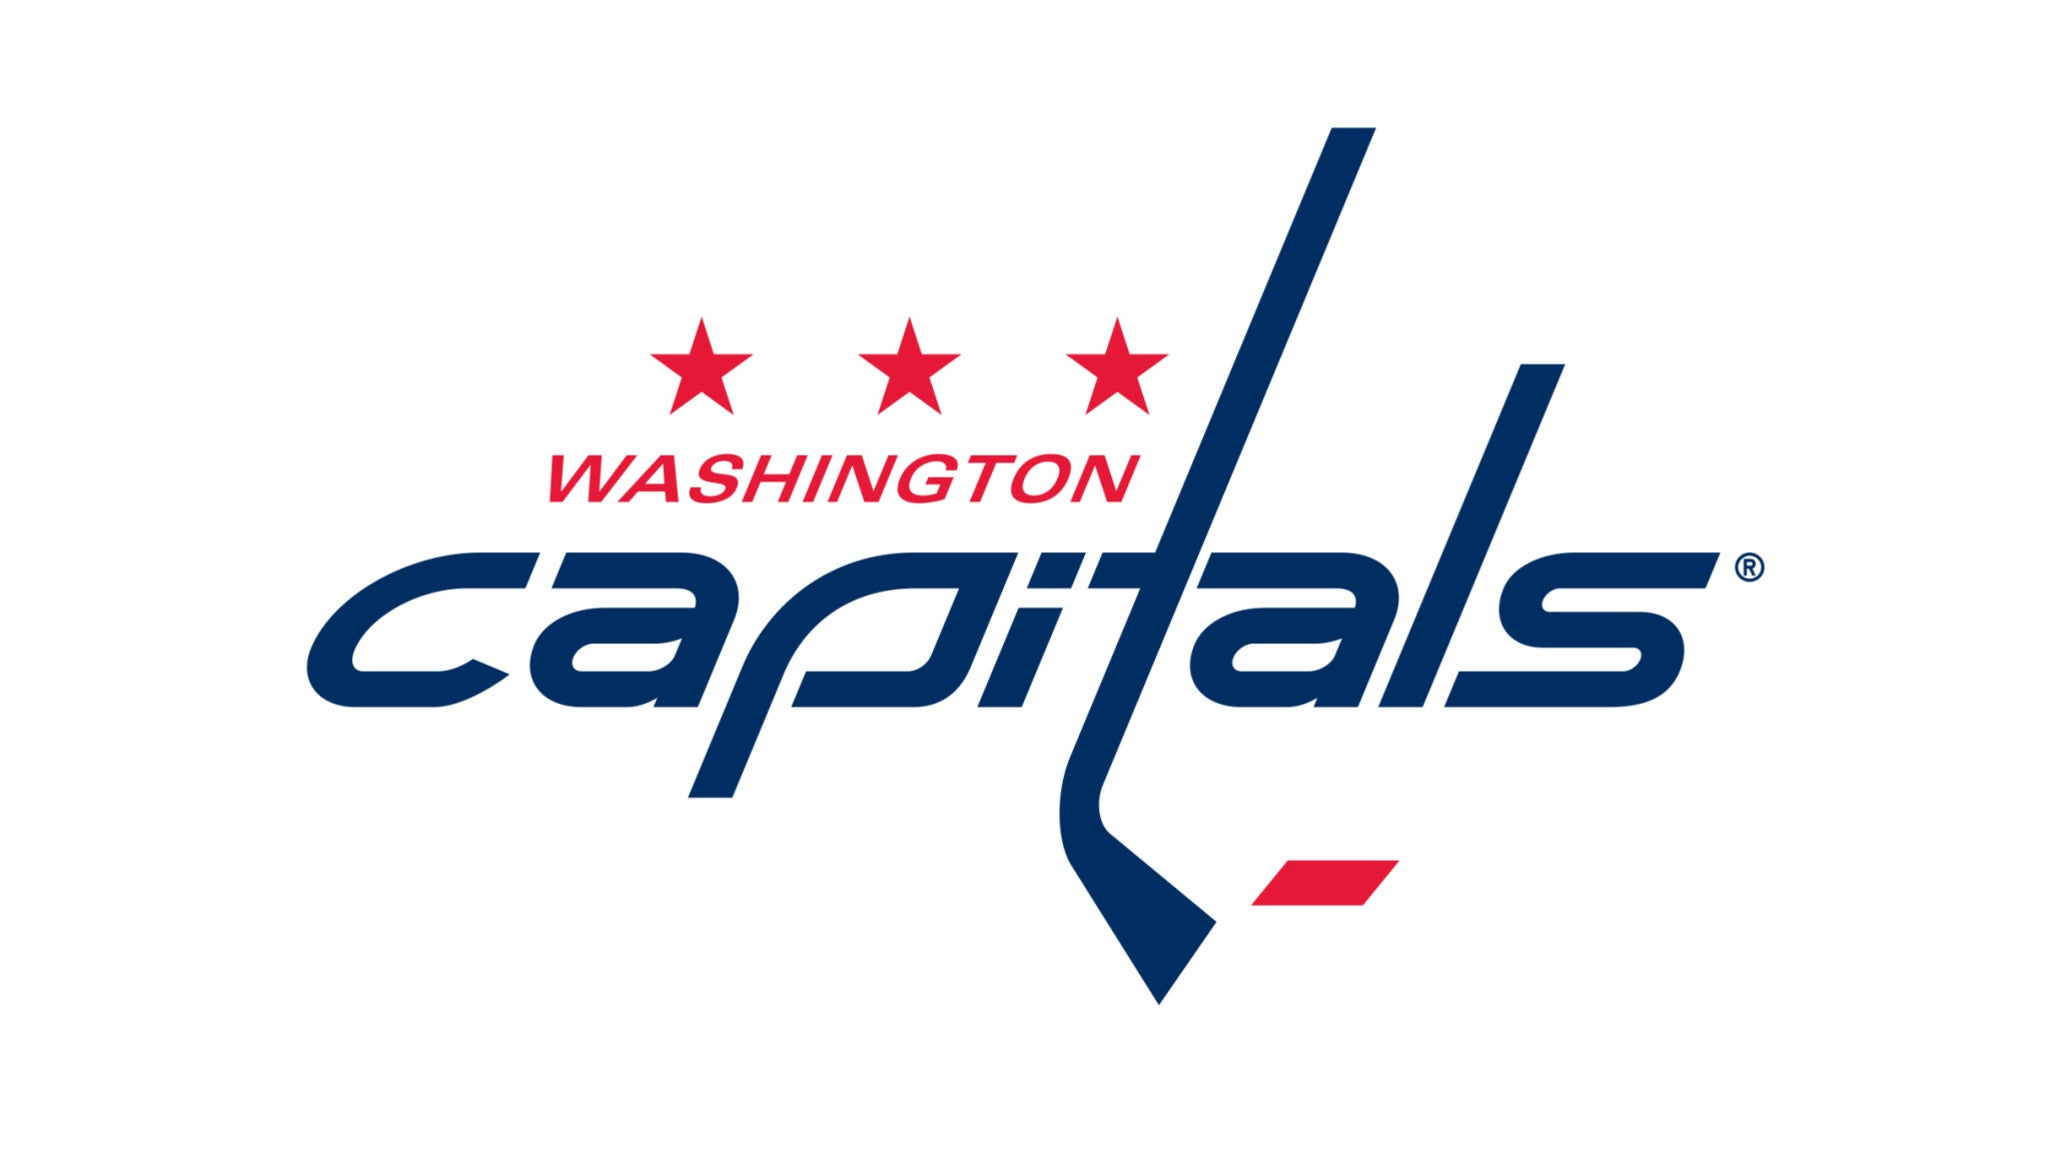 Washington Capitals vs. St. Louis Blues